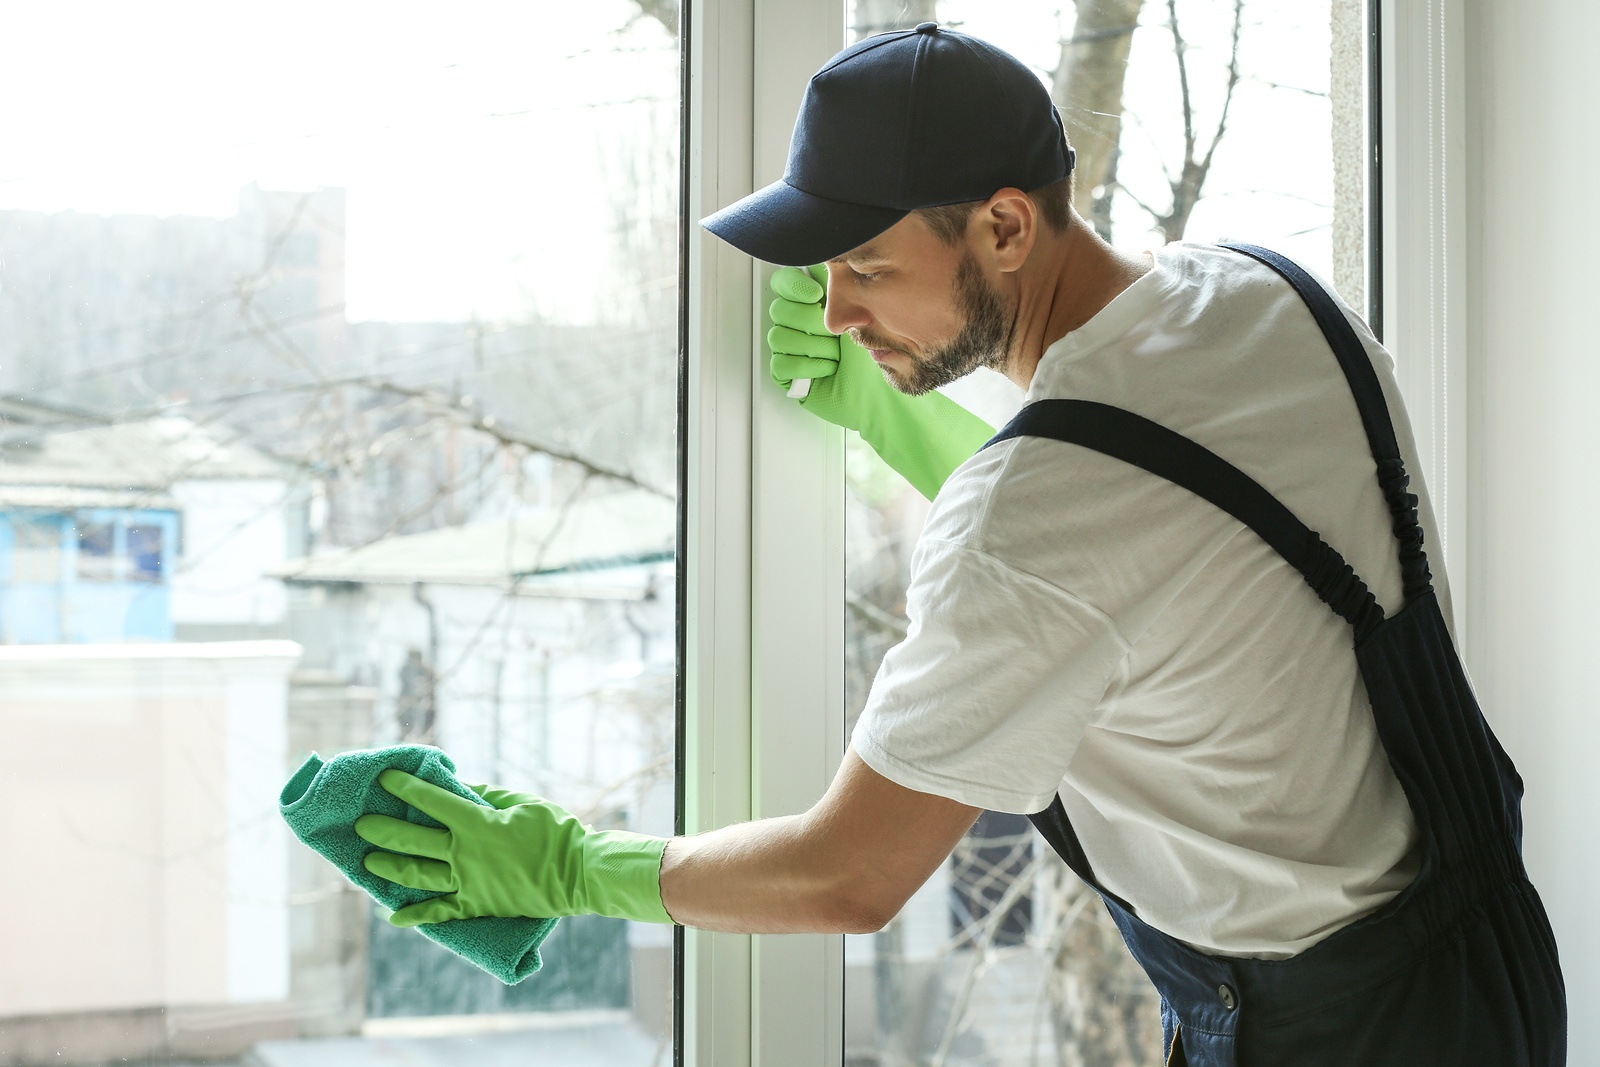 window cleaning ann arbor detroit window cleaning livonia cleaning services ann arbor company downriver the crystal clear benefits of clean windows